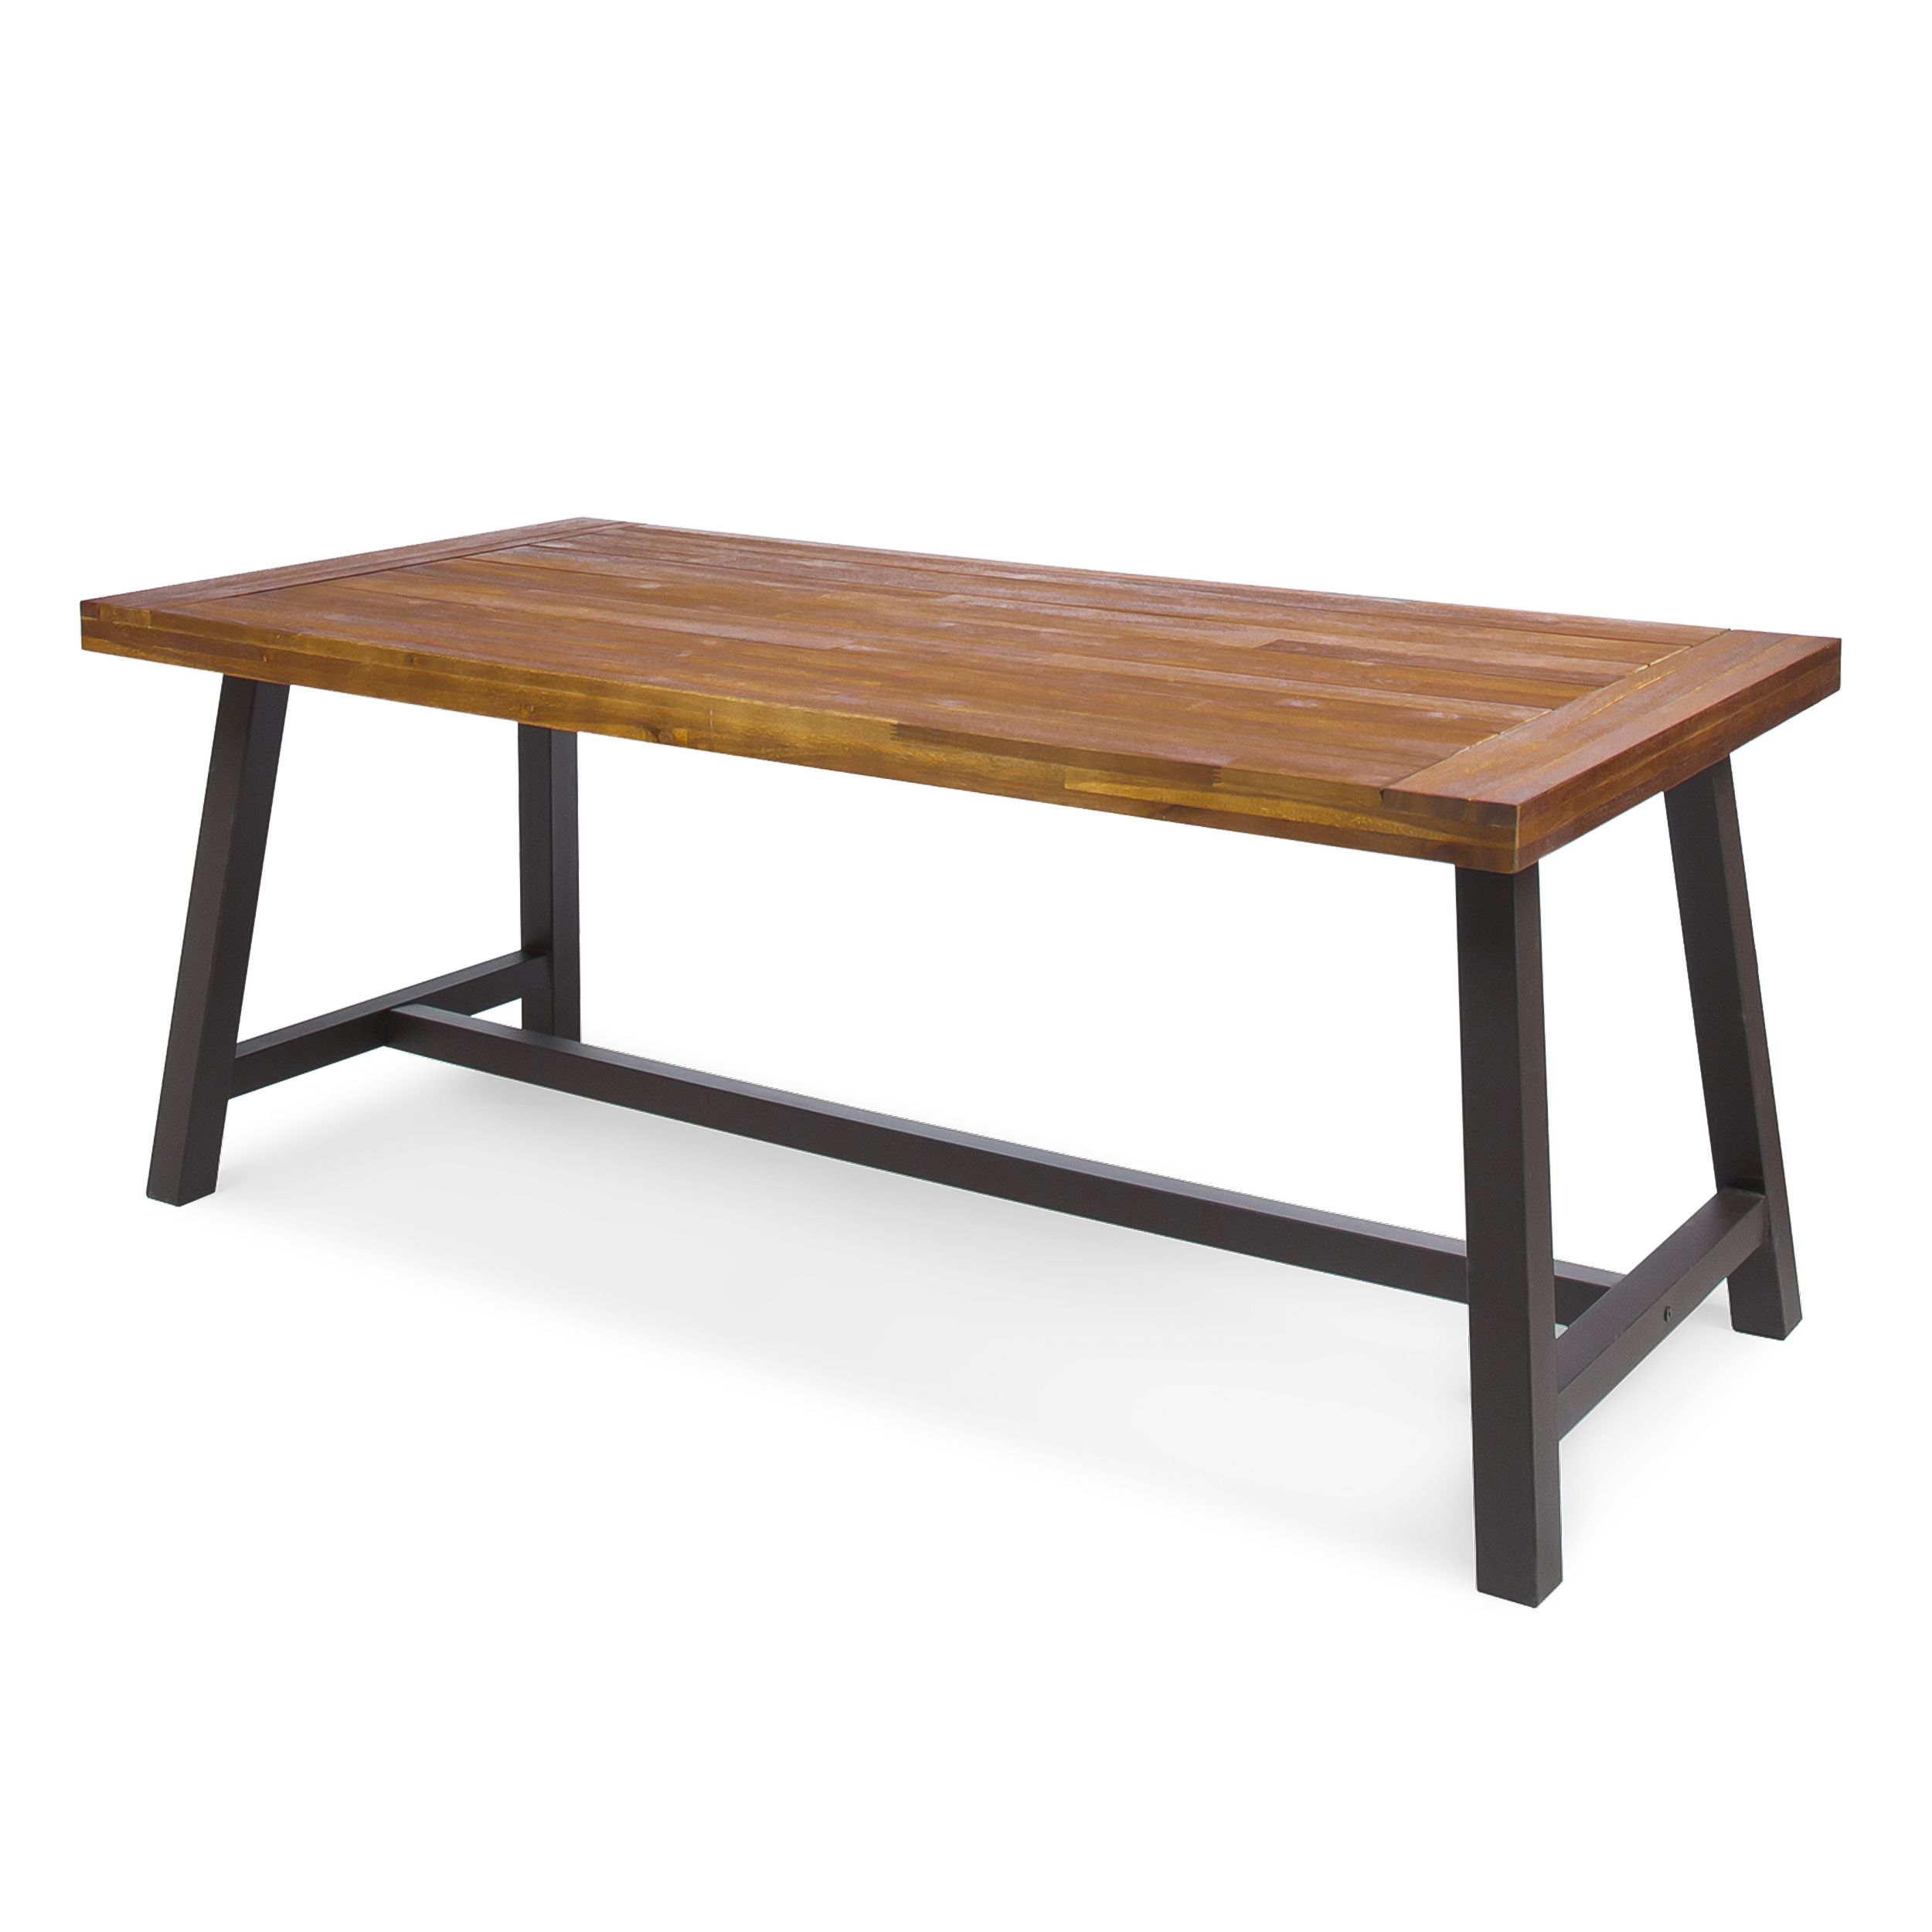 Carlie Outdoor Dining Table with Iron Legs, Sandblast Finish and Rustic Metal